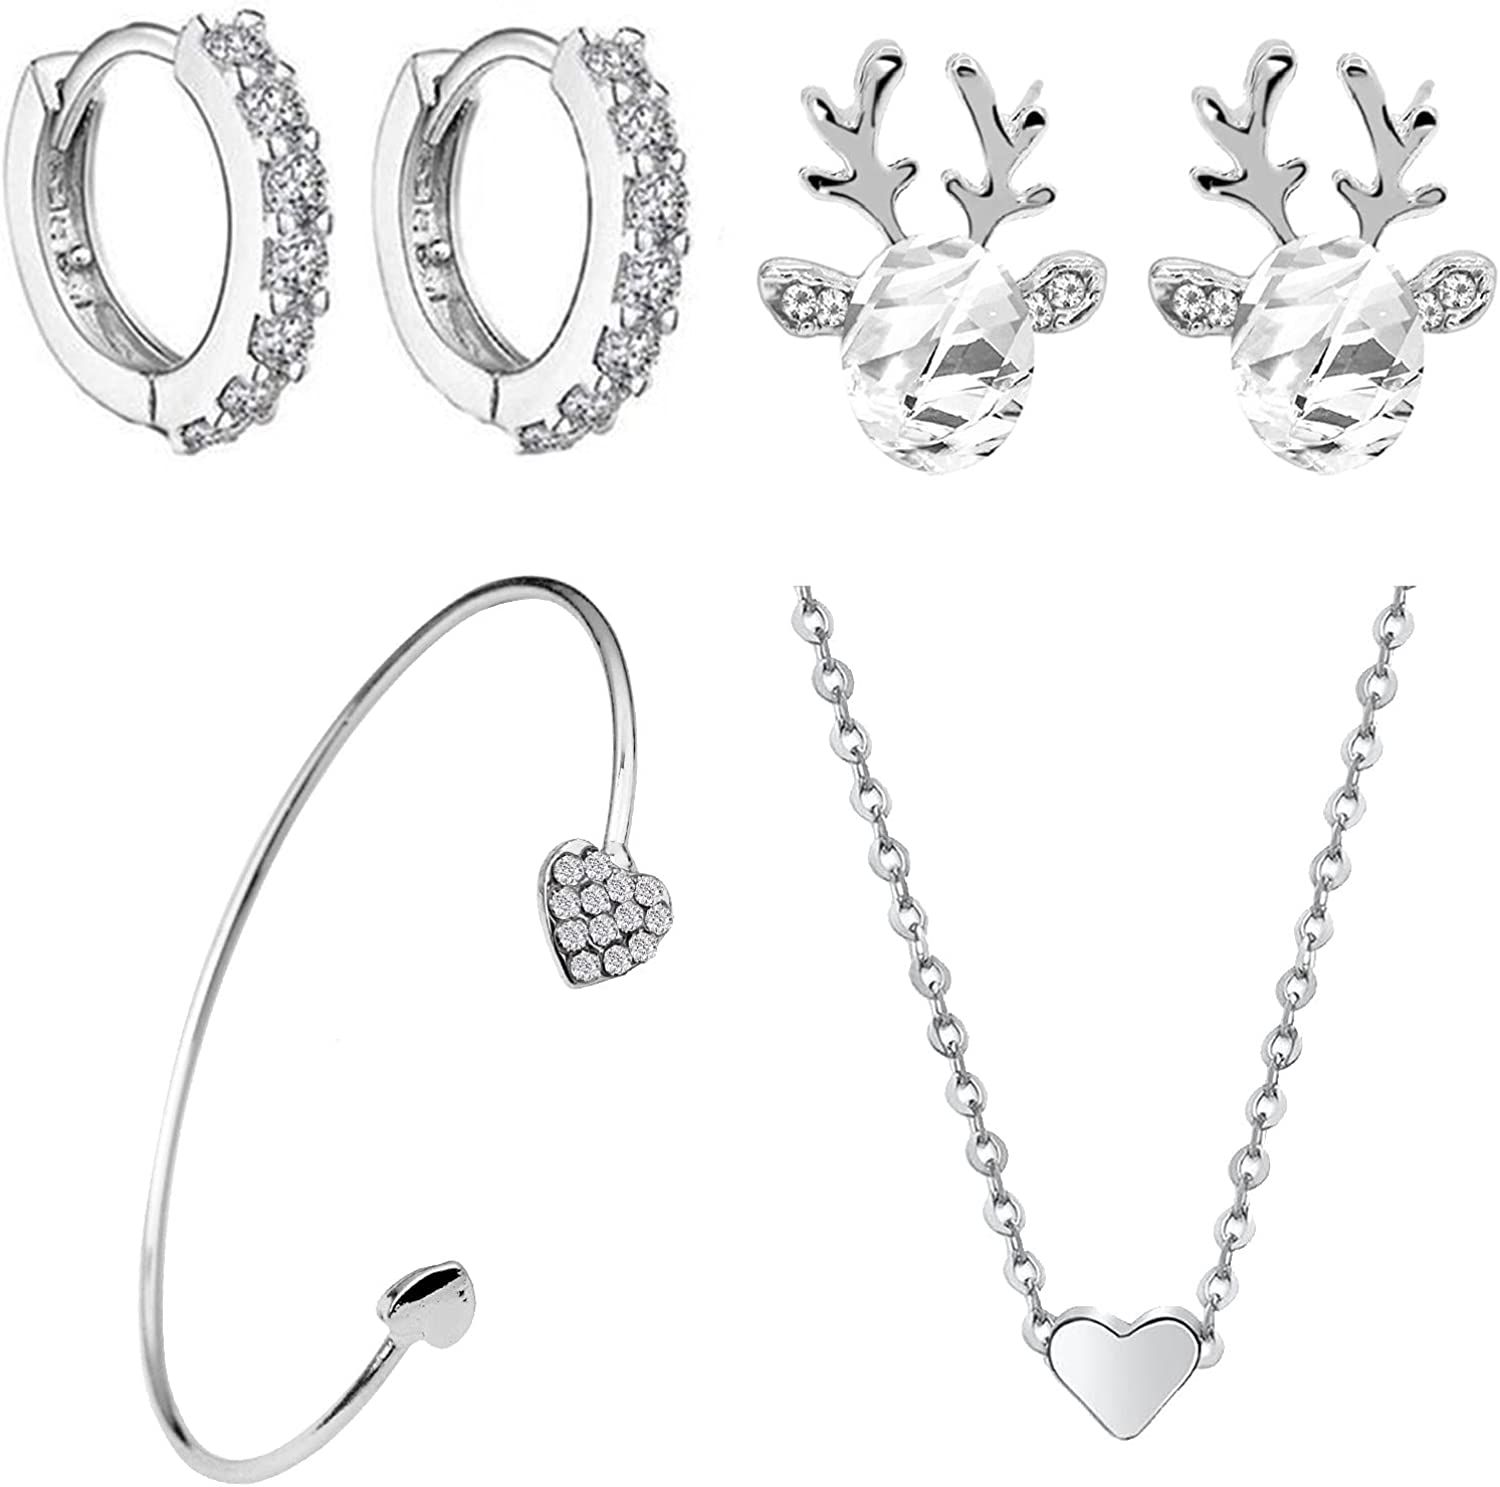 DVCB 4-piece Jewelry Memphis Mall Set Cute Deer Fashi and Omaha Mall Hoop Round Earrings